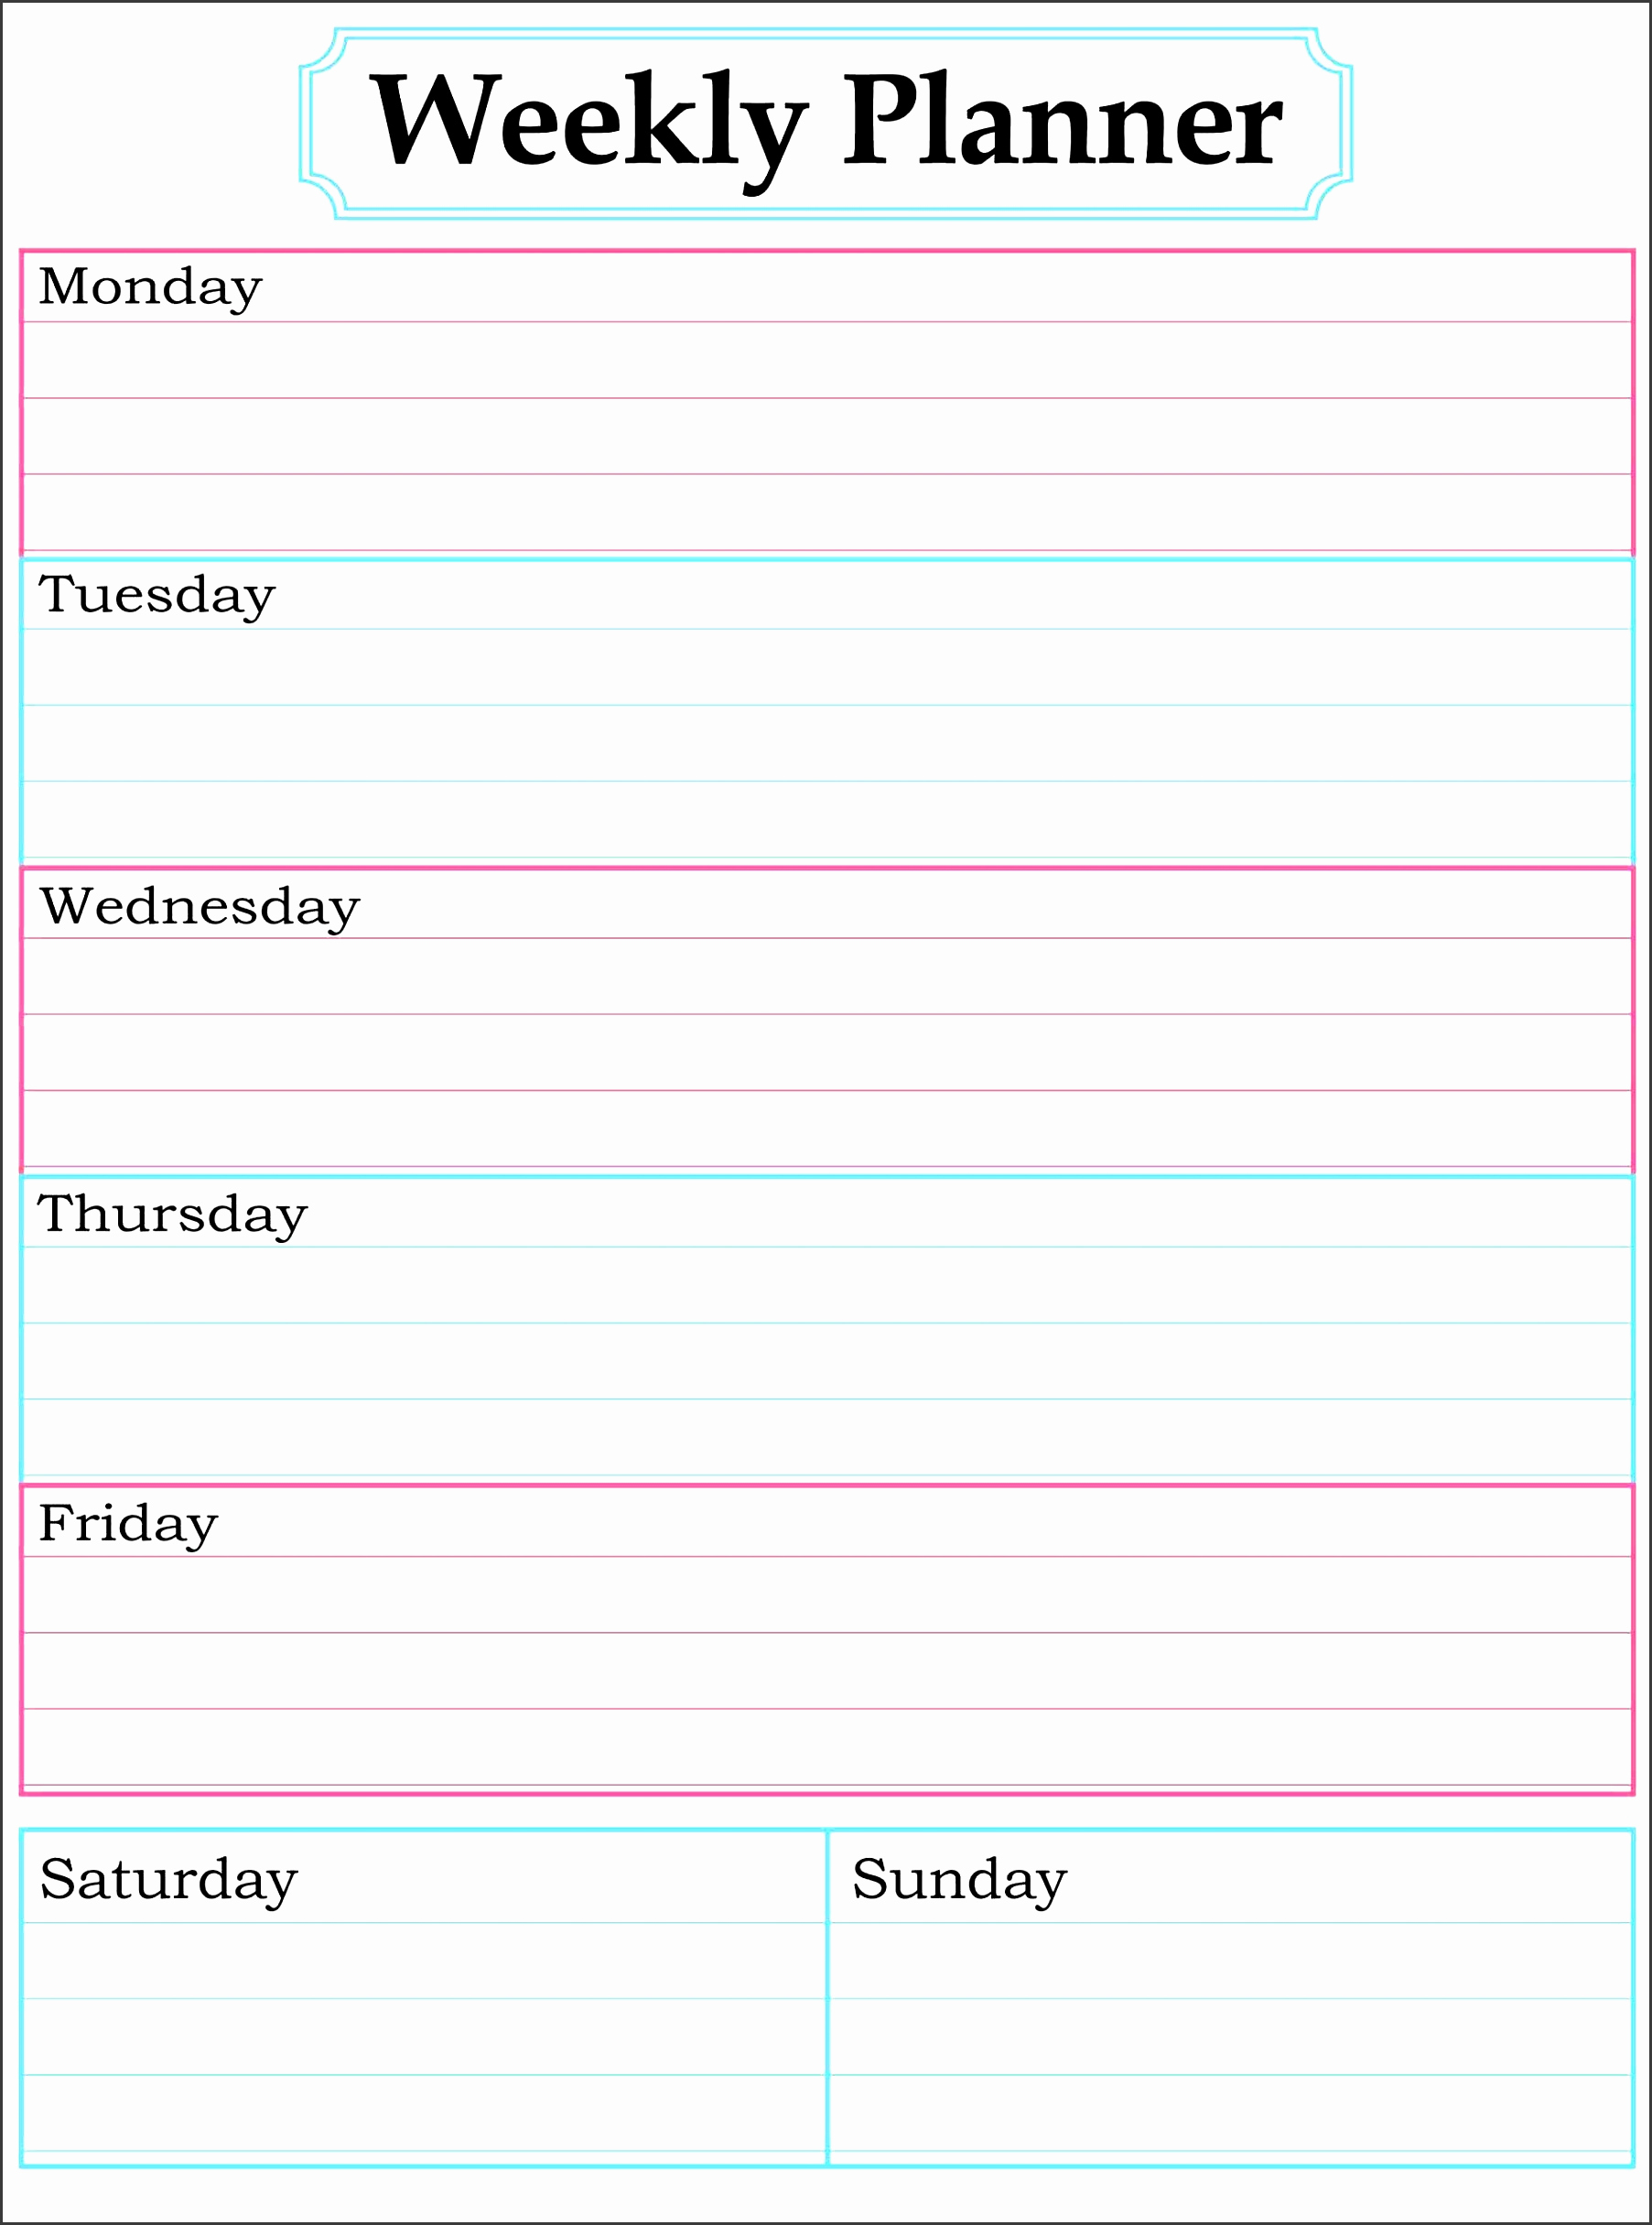 One Week Schedule Template Fresh 11 E Week Planner for Employees Sampletemplatess